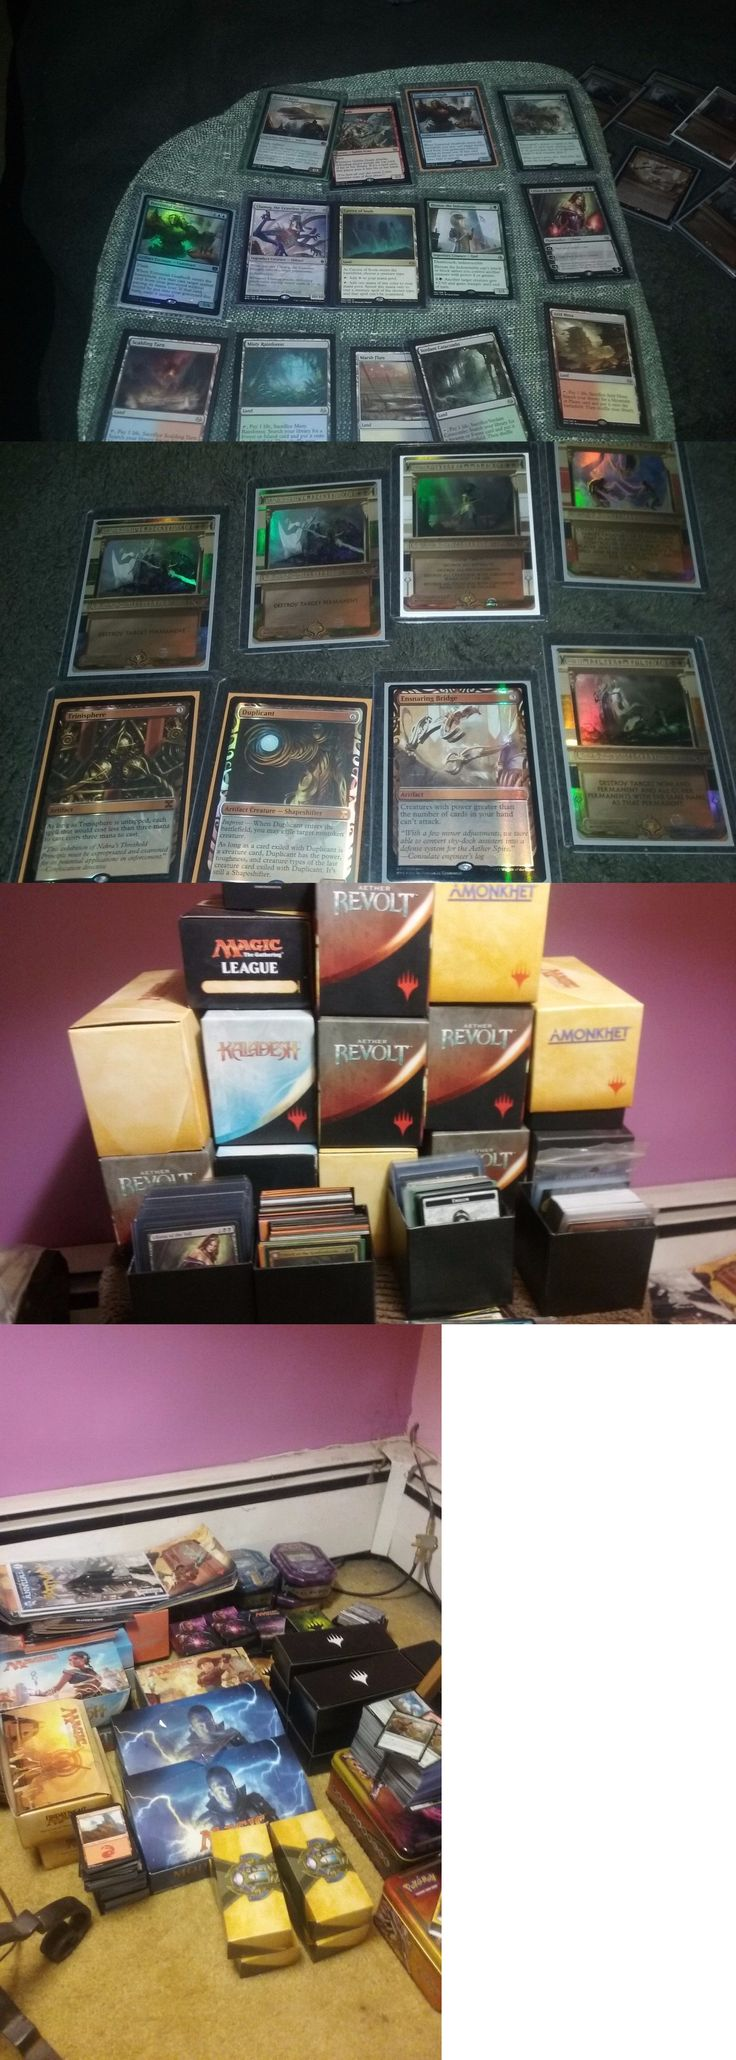 MTG Mixed Card Lots 19113: Magic The Gathering Card Lot ,Mtg ,Magic Cards. -> BUY IT NOW ONLY: $1700 on eBay!